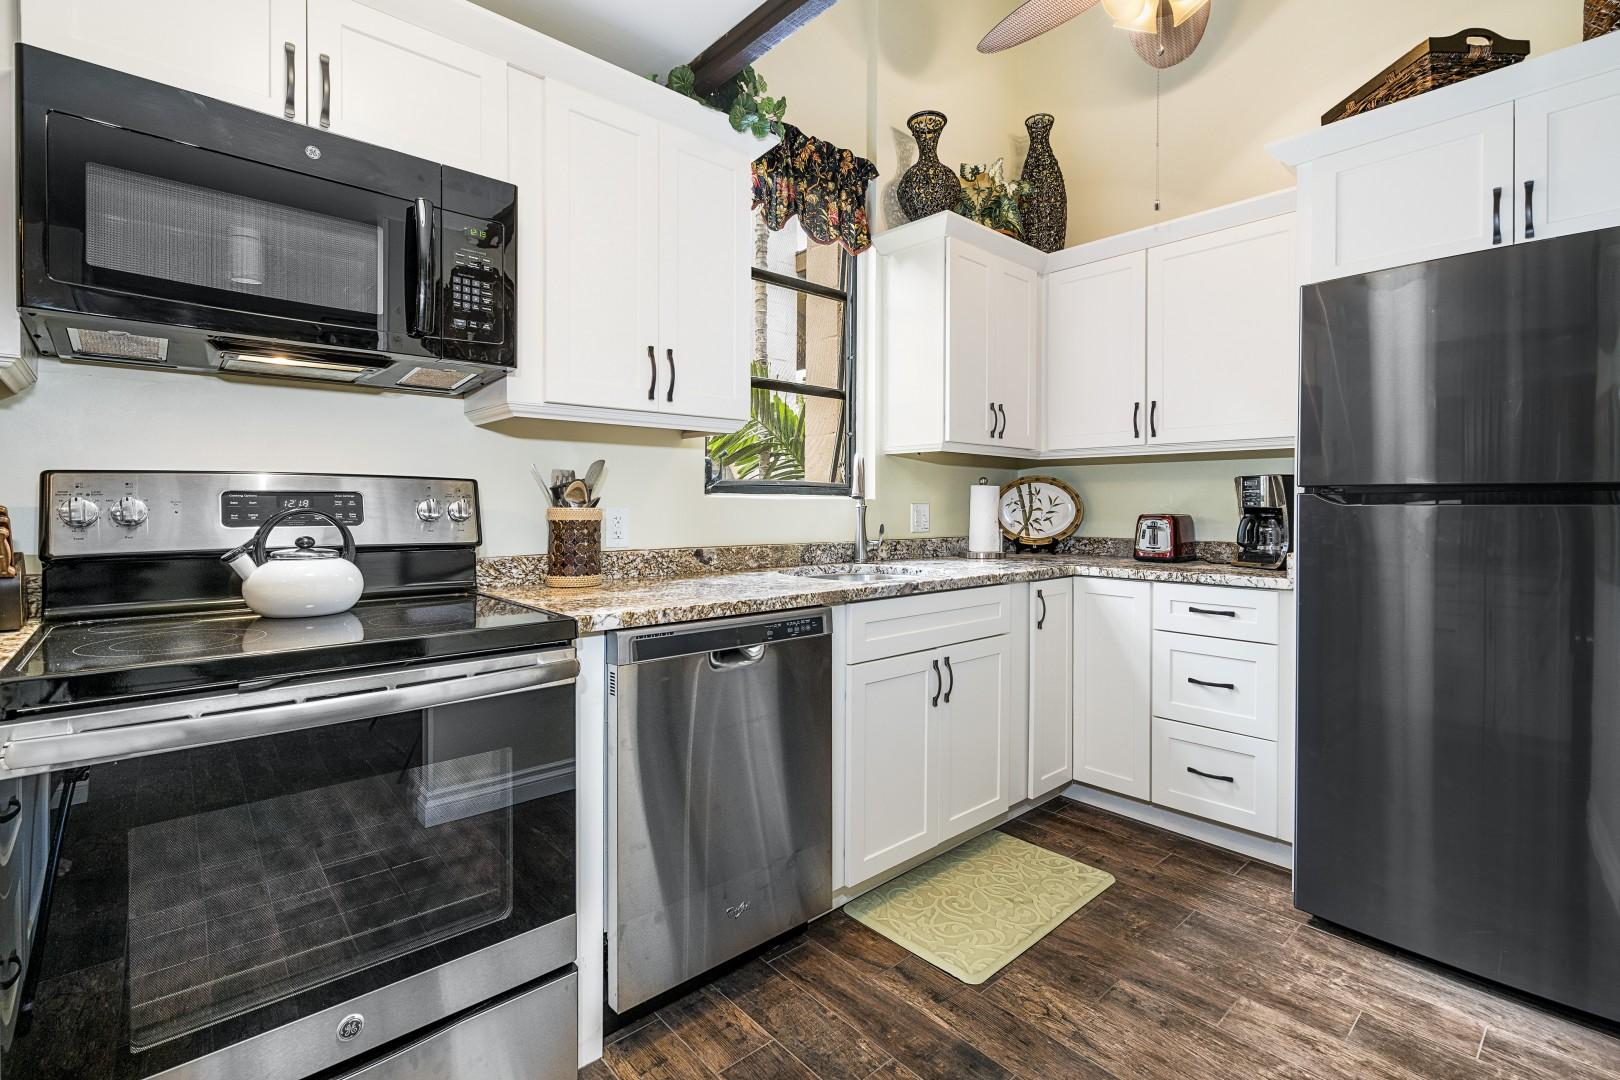 Gorgeously remodeled kitchen as of 2018!